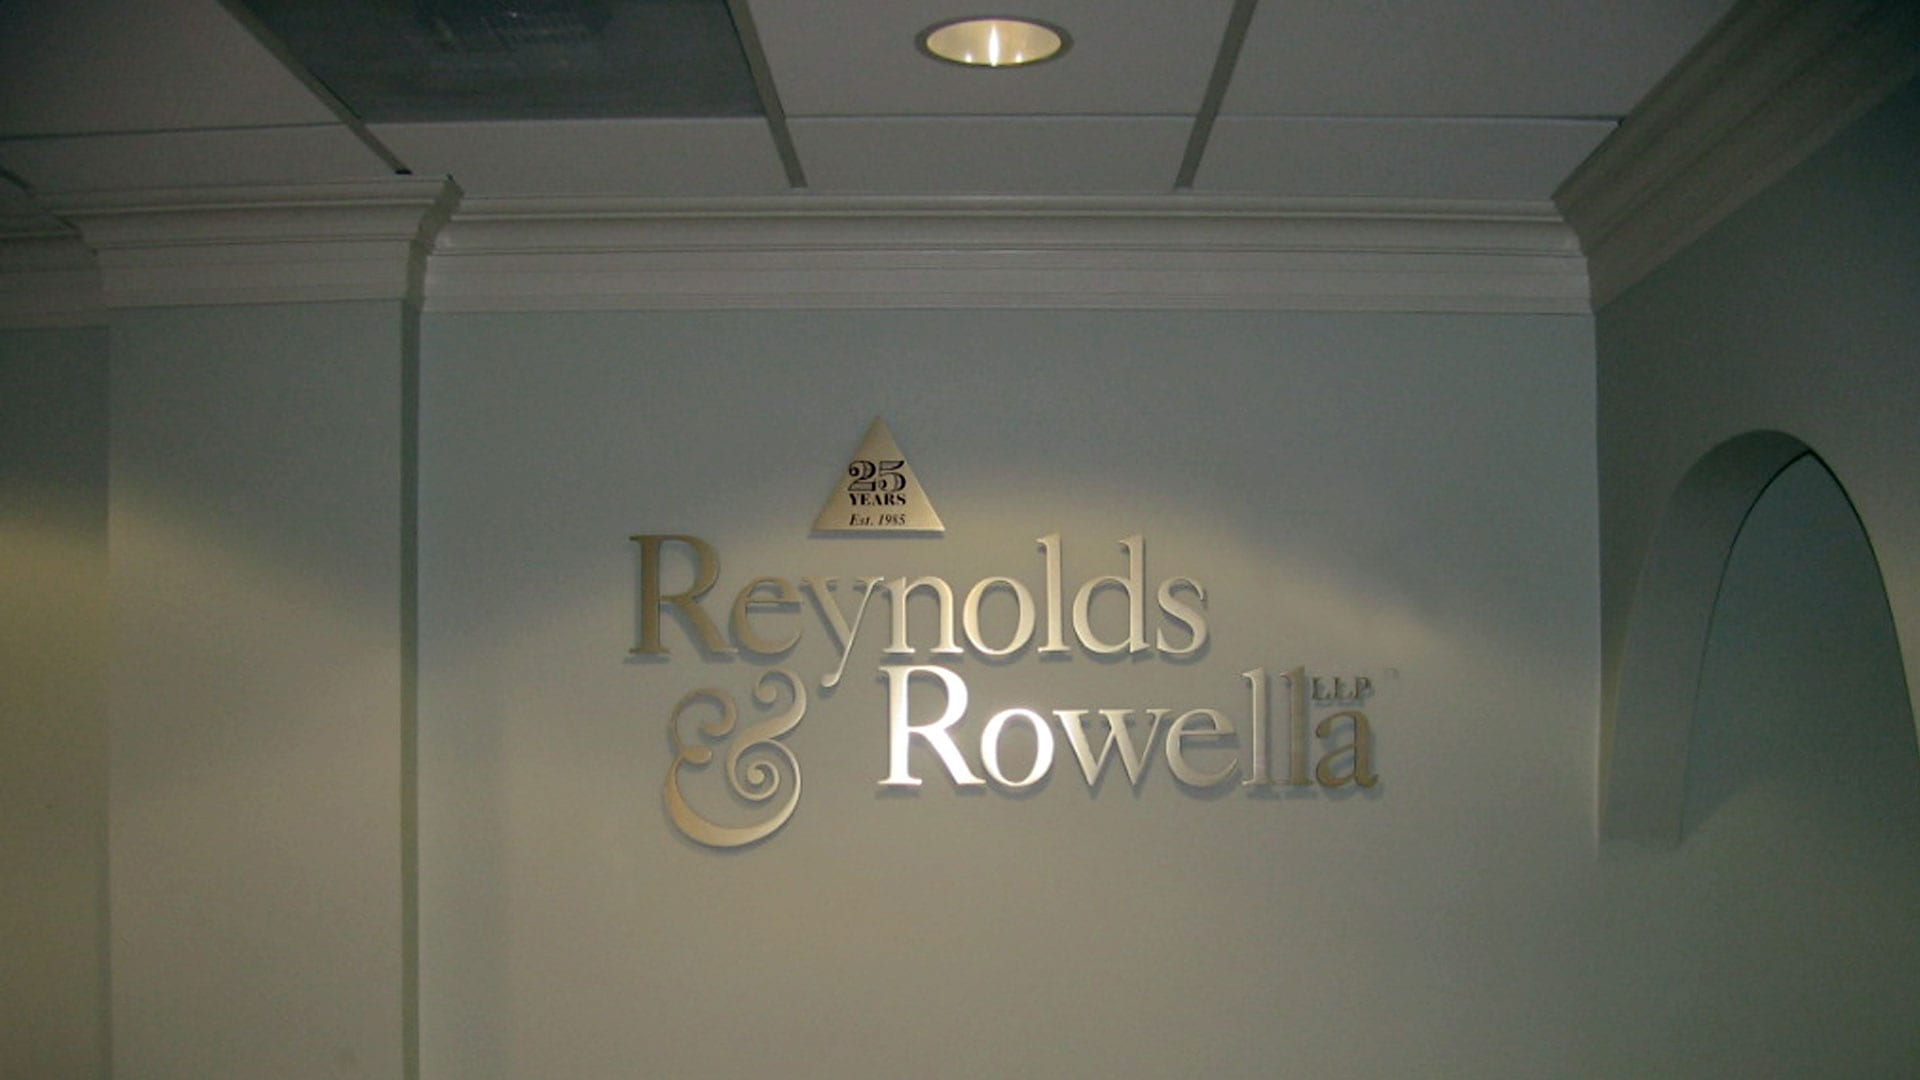 Dimensional Letters for Reynolds and Rowella